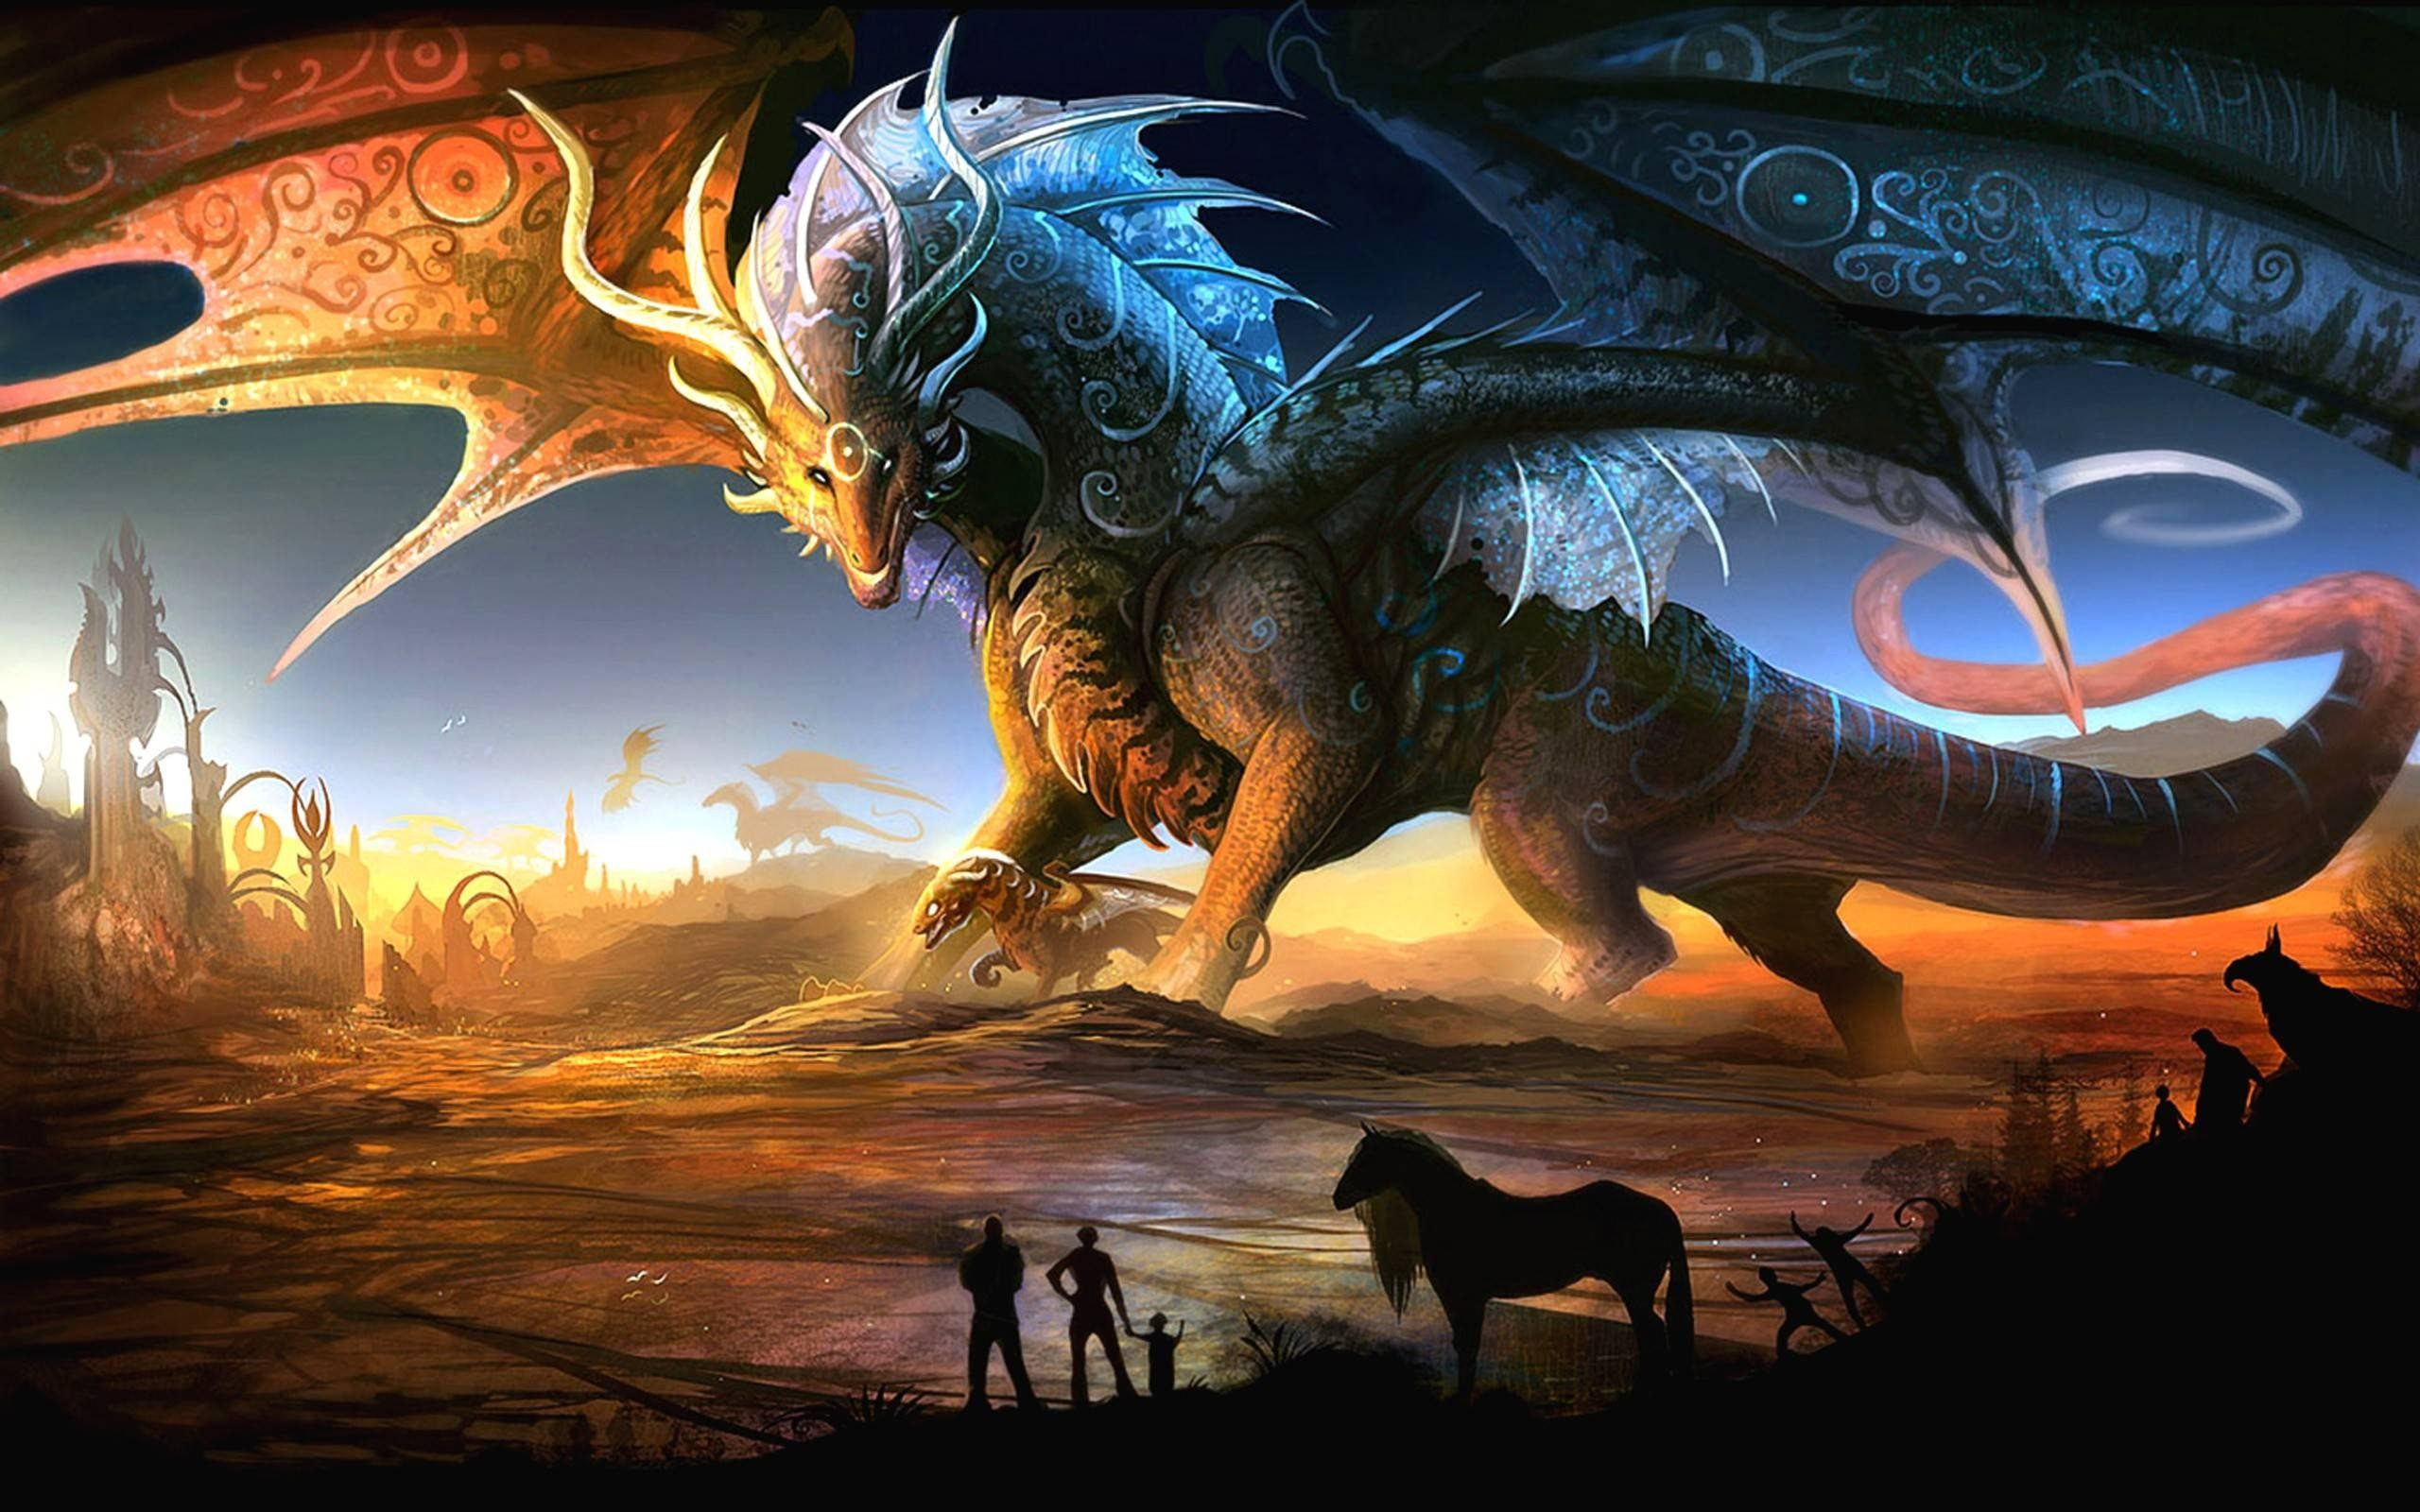 47 dragon wallpapers download free amazing full hd - Dragon backgrounds 1920x1080 ...